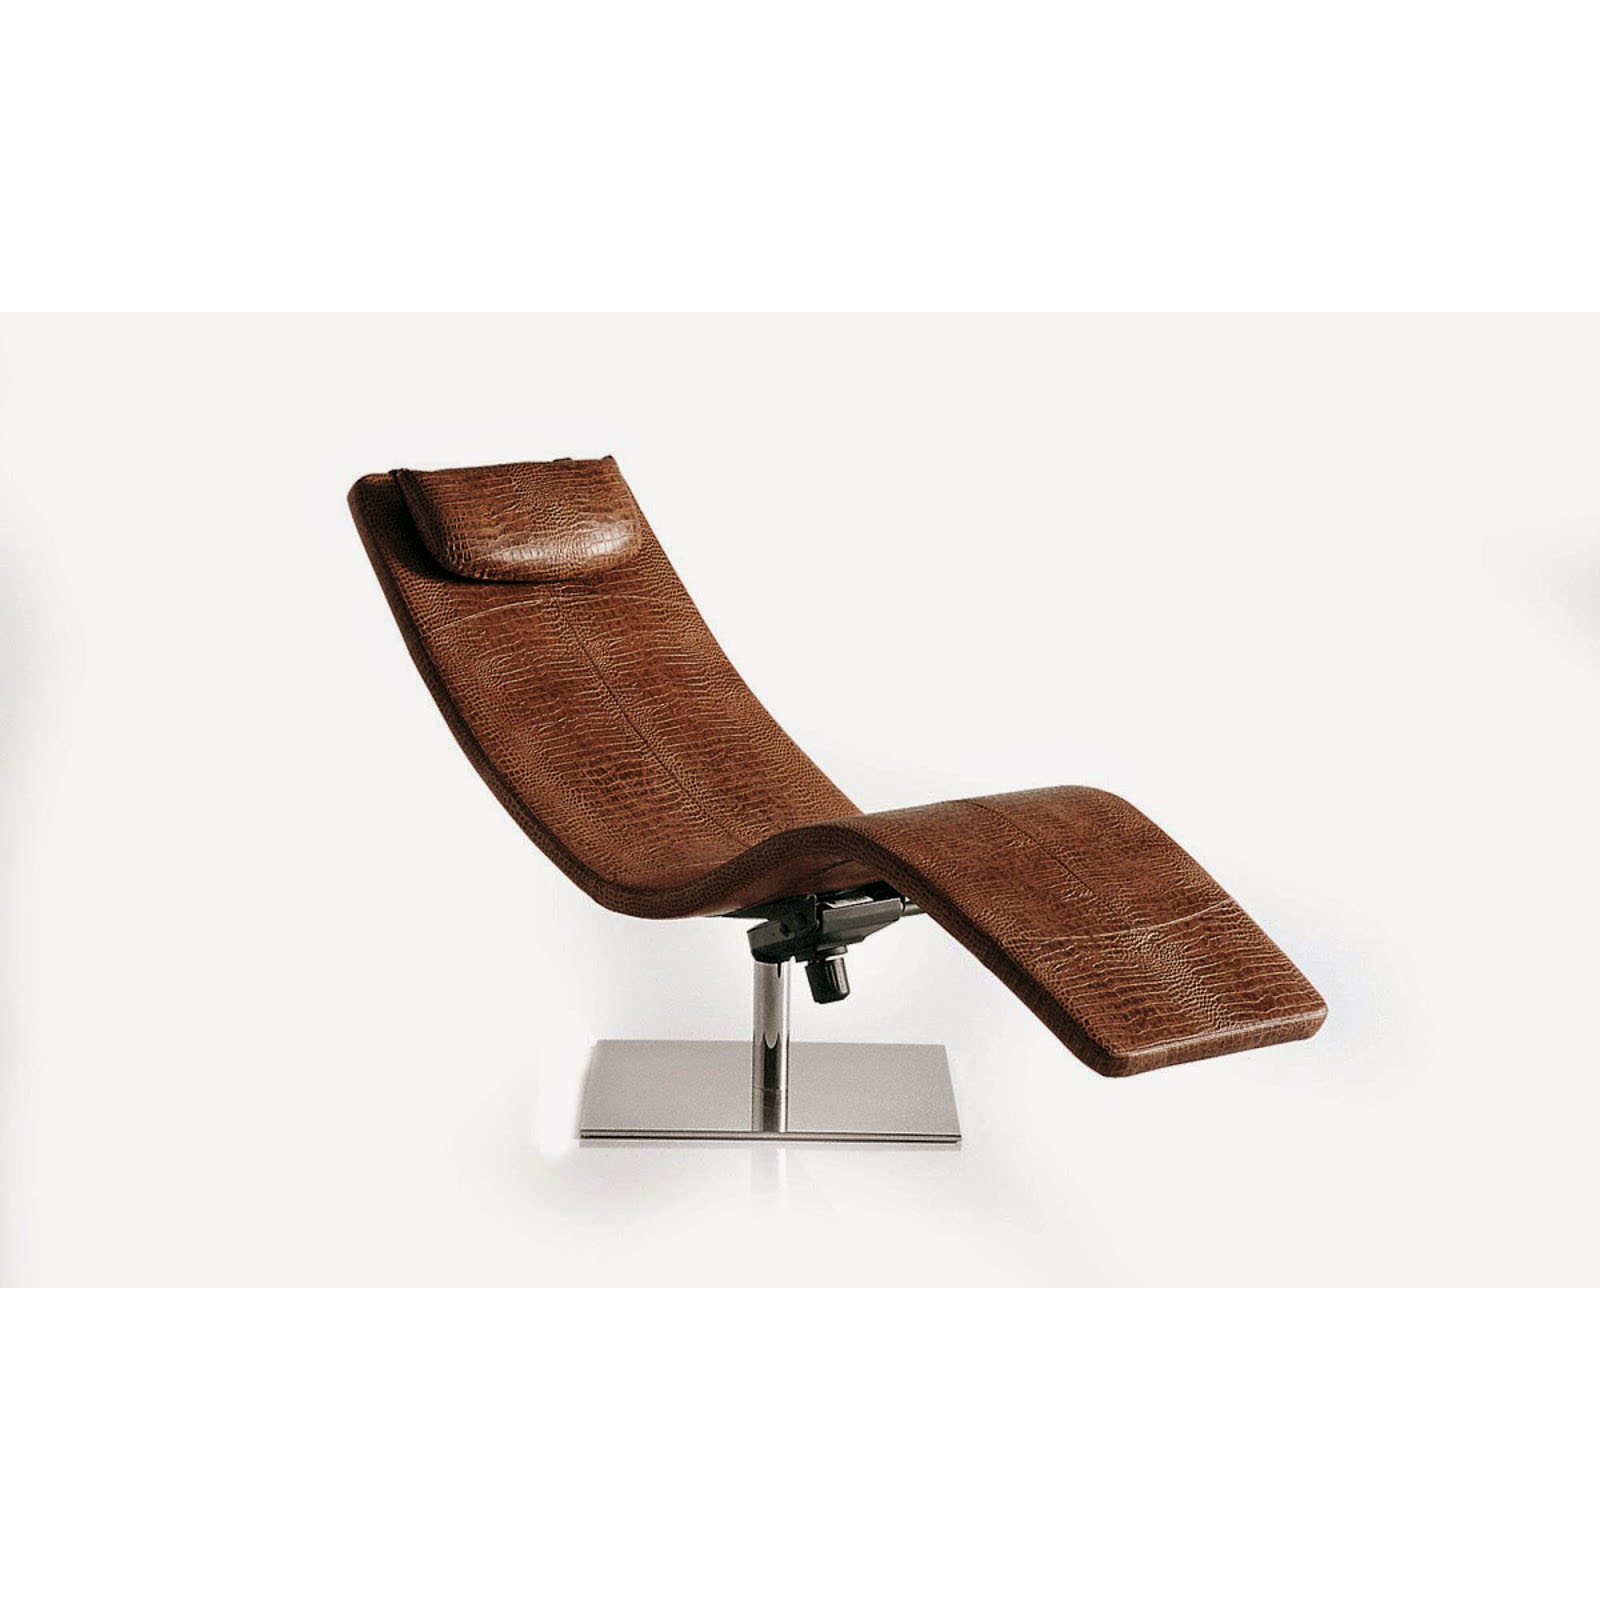 Chaise de luxe design chaise m tal simili cuir ancien for Chaise longue design jardin